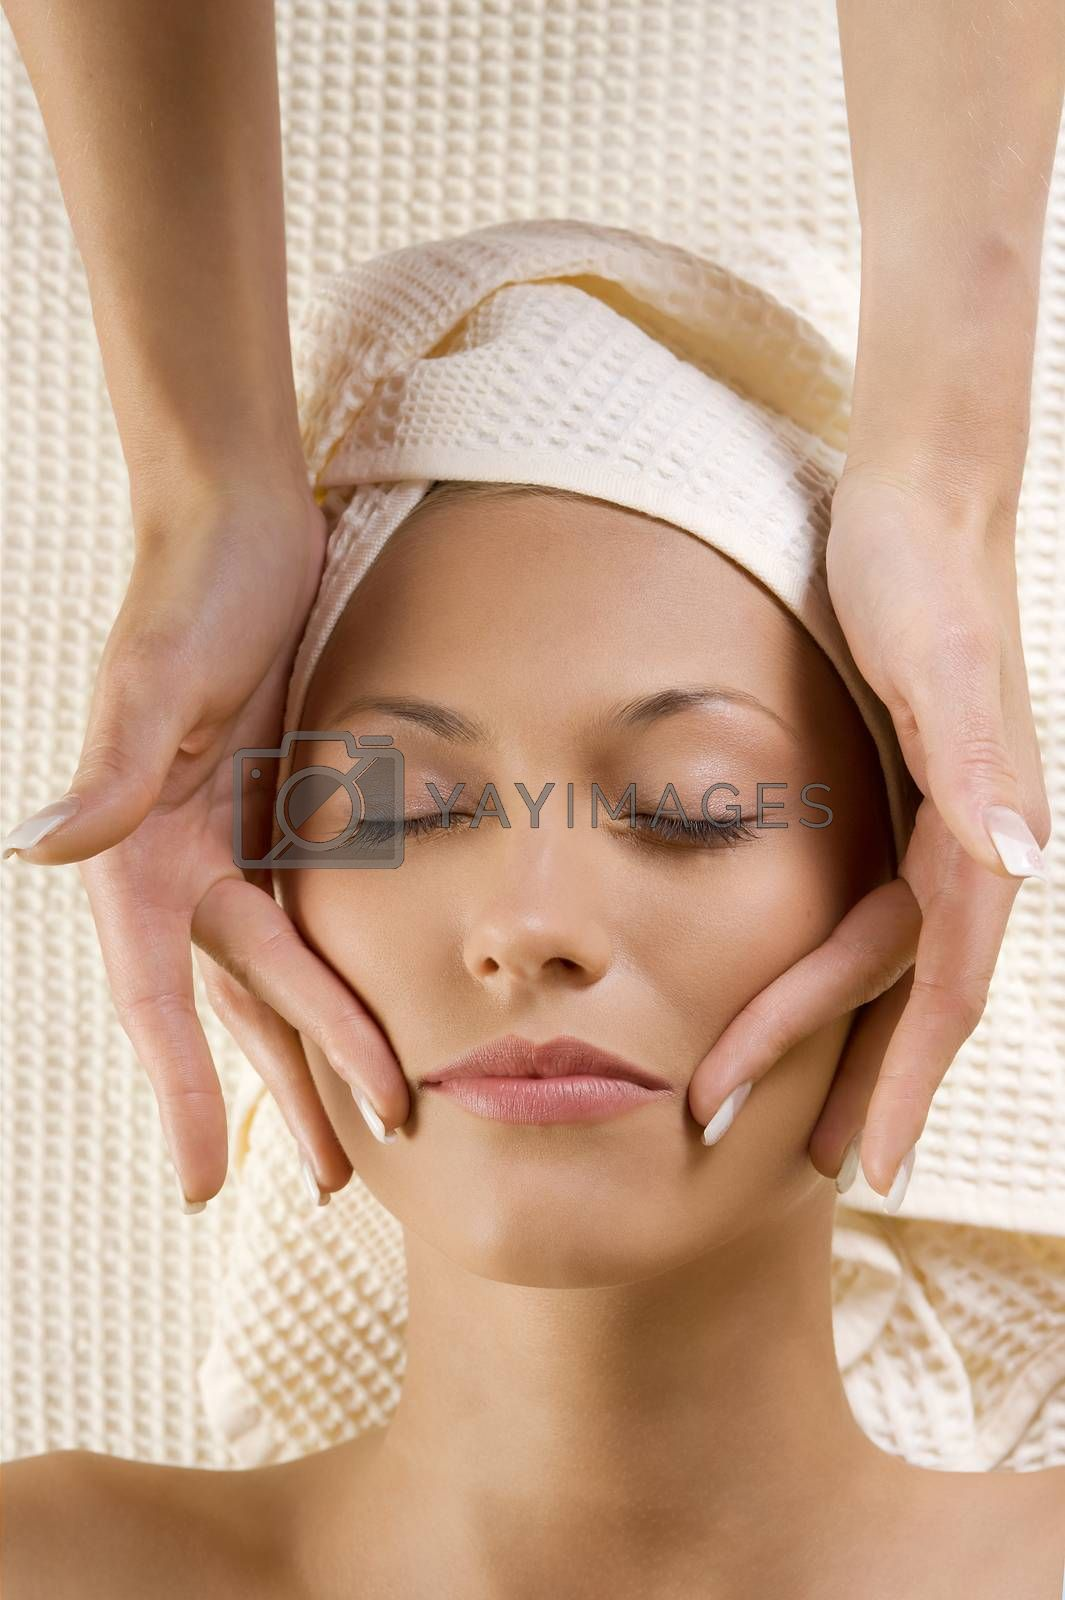 Royalty free image of hands massage on face by fotoCD